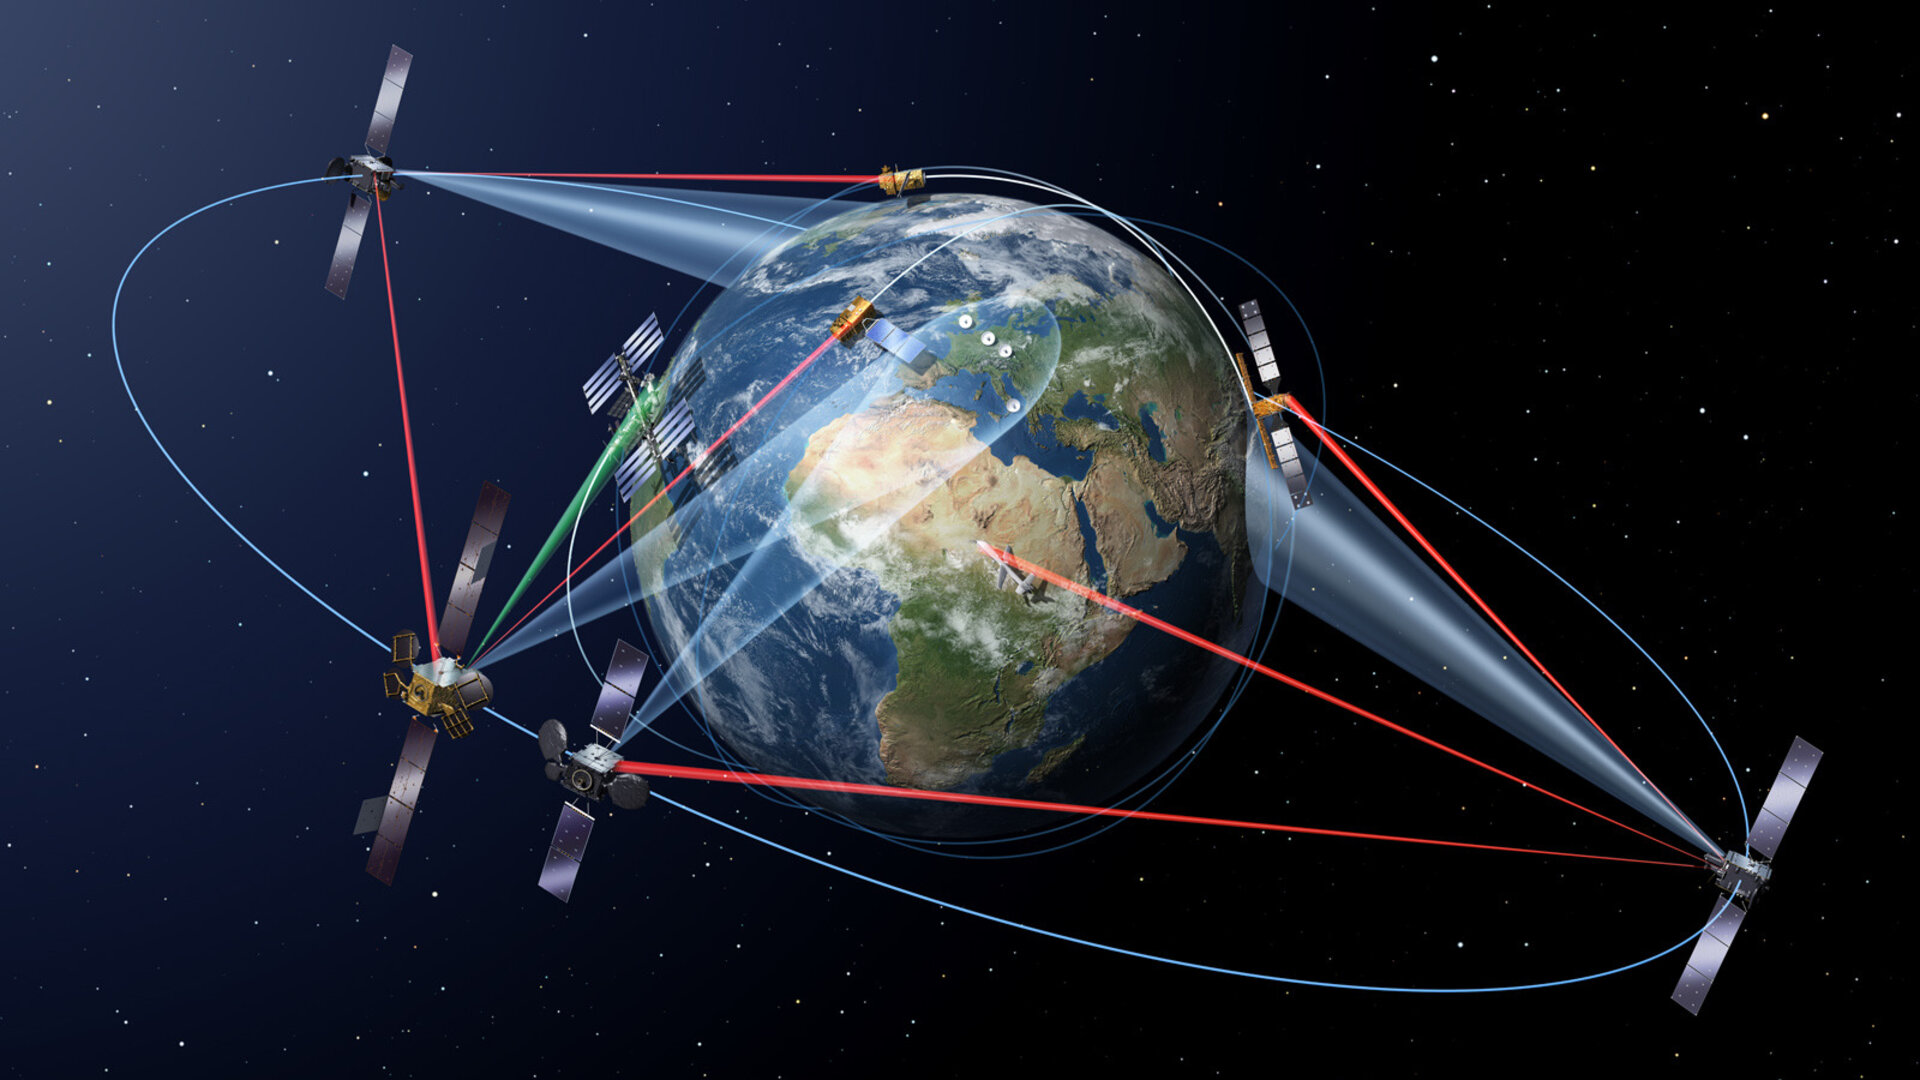 The European Data Relay System (EDRS) uses advanced laser technology to relay information collected by lower orbiting satellites to the Earth via geostationary nodes